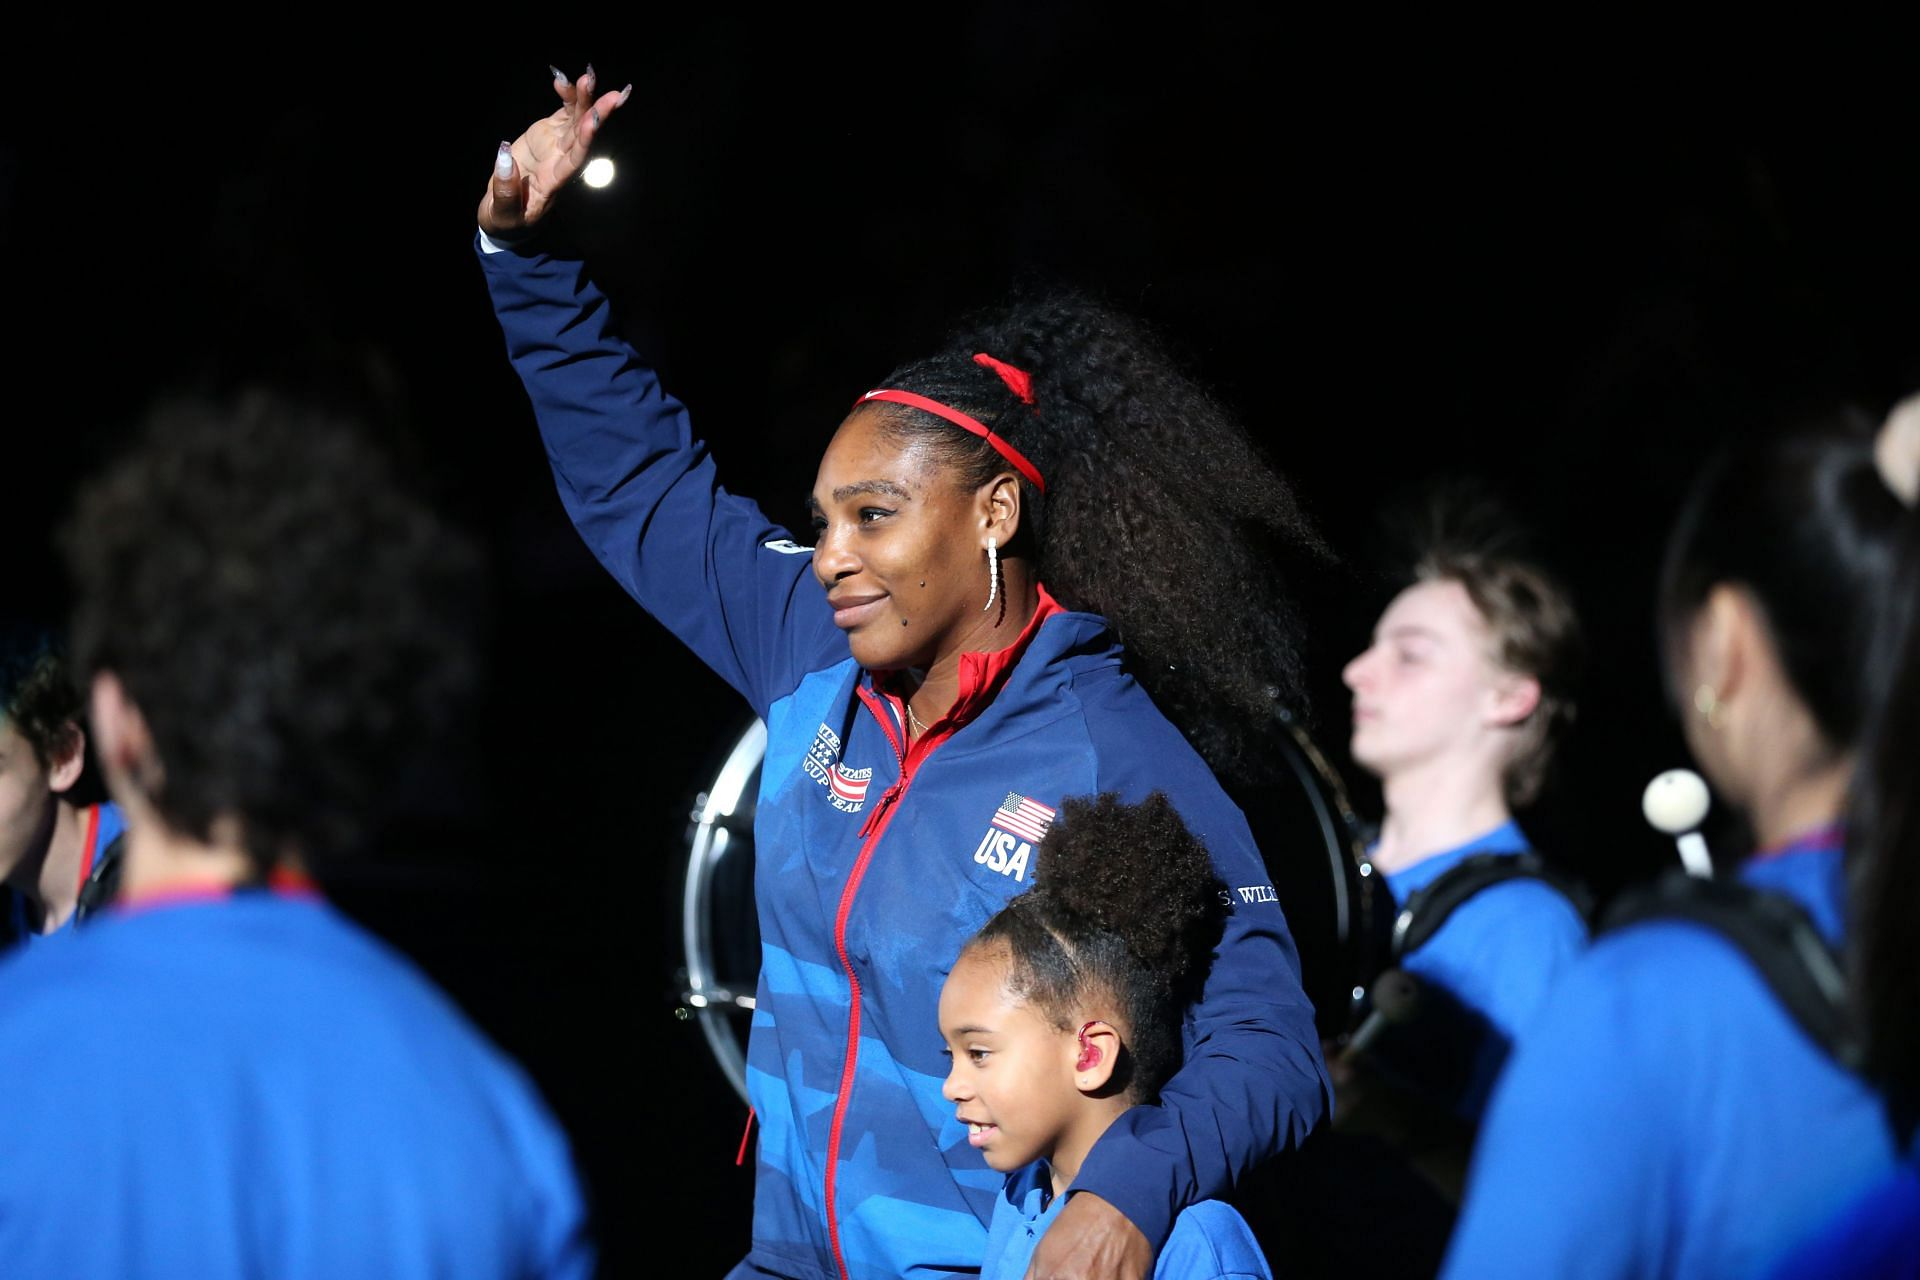 Serena Williams at the 2020 Billie Jean King Cup tie against Latvia.